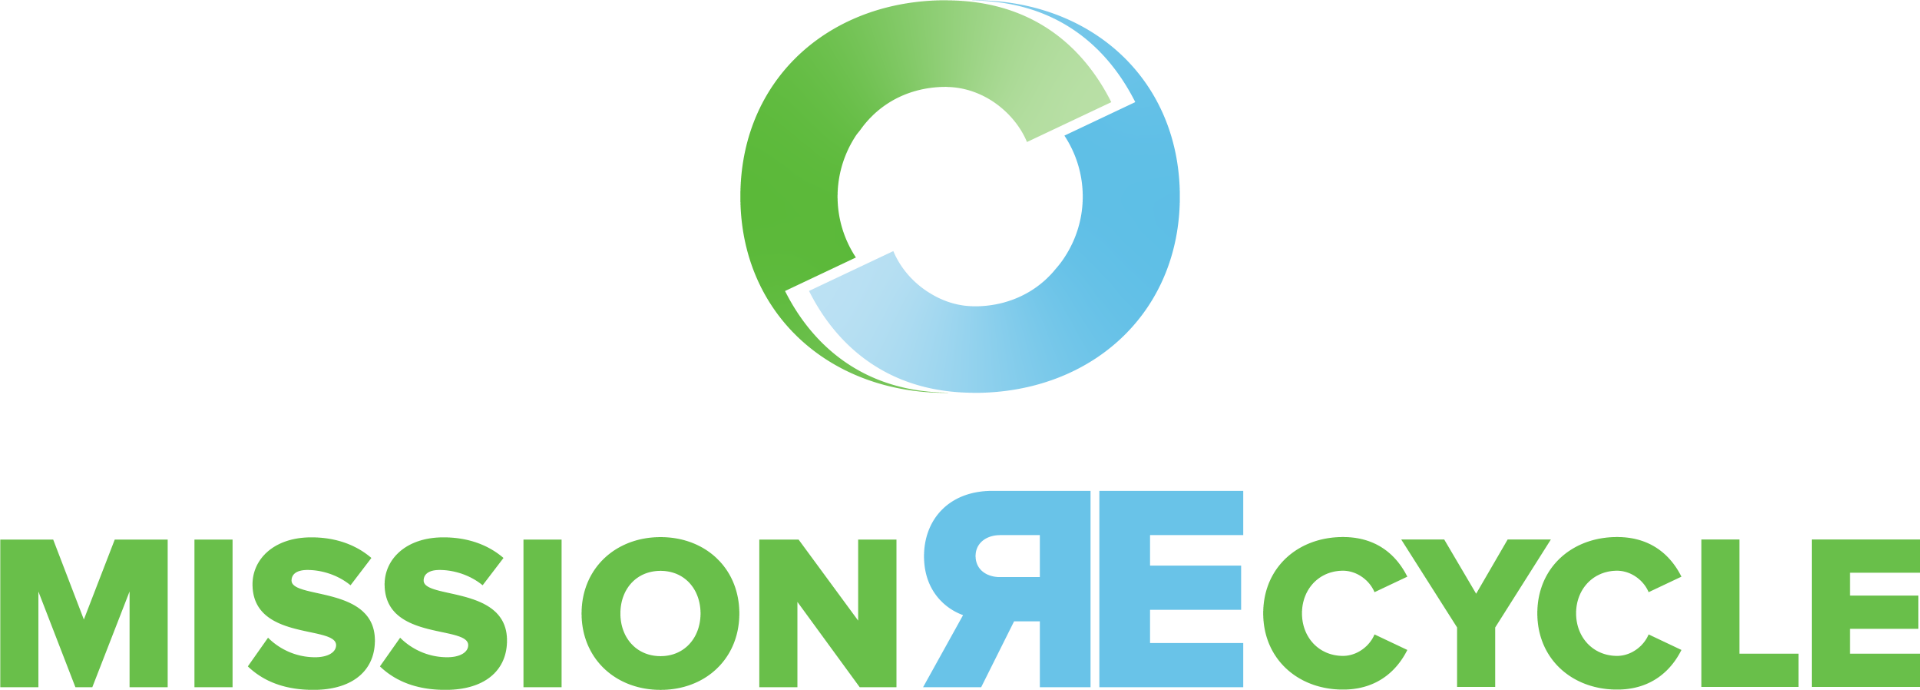 Mission Recycle logo